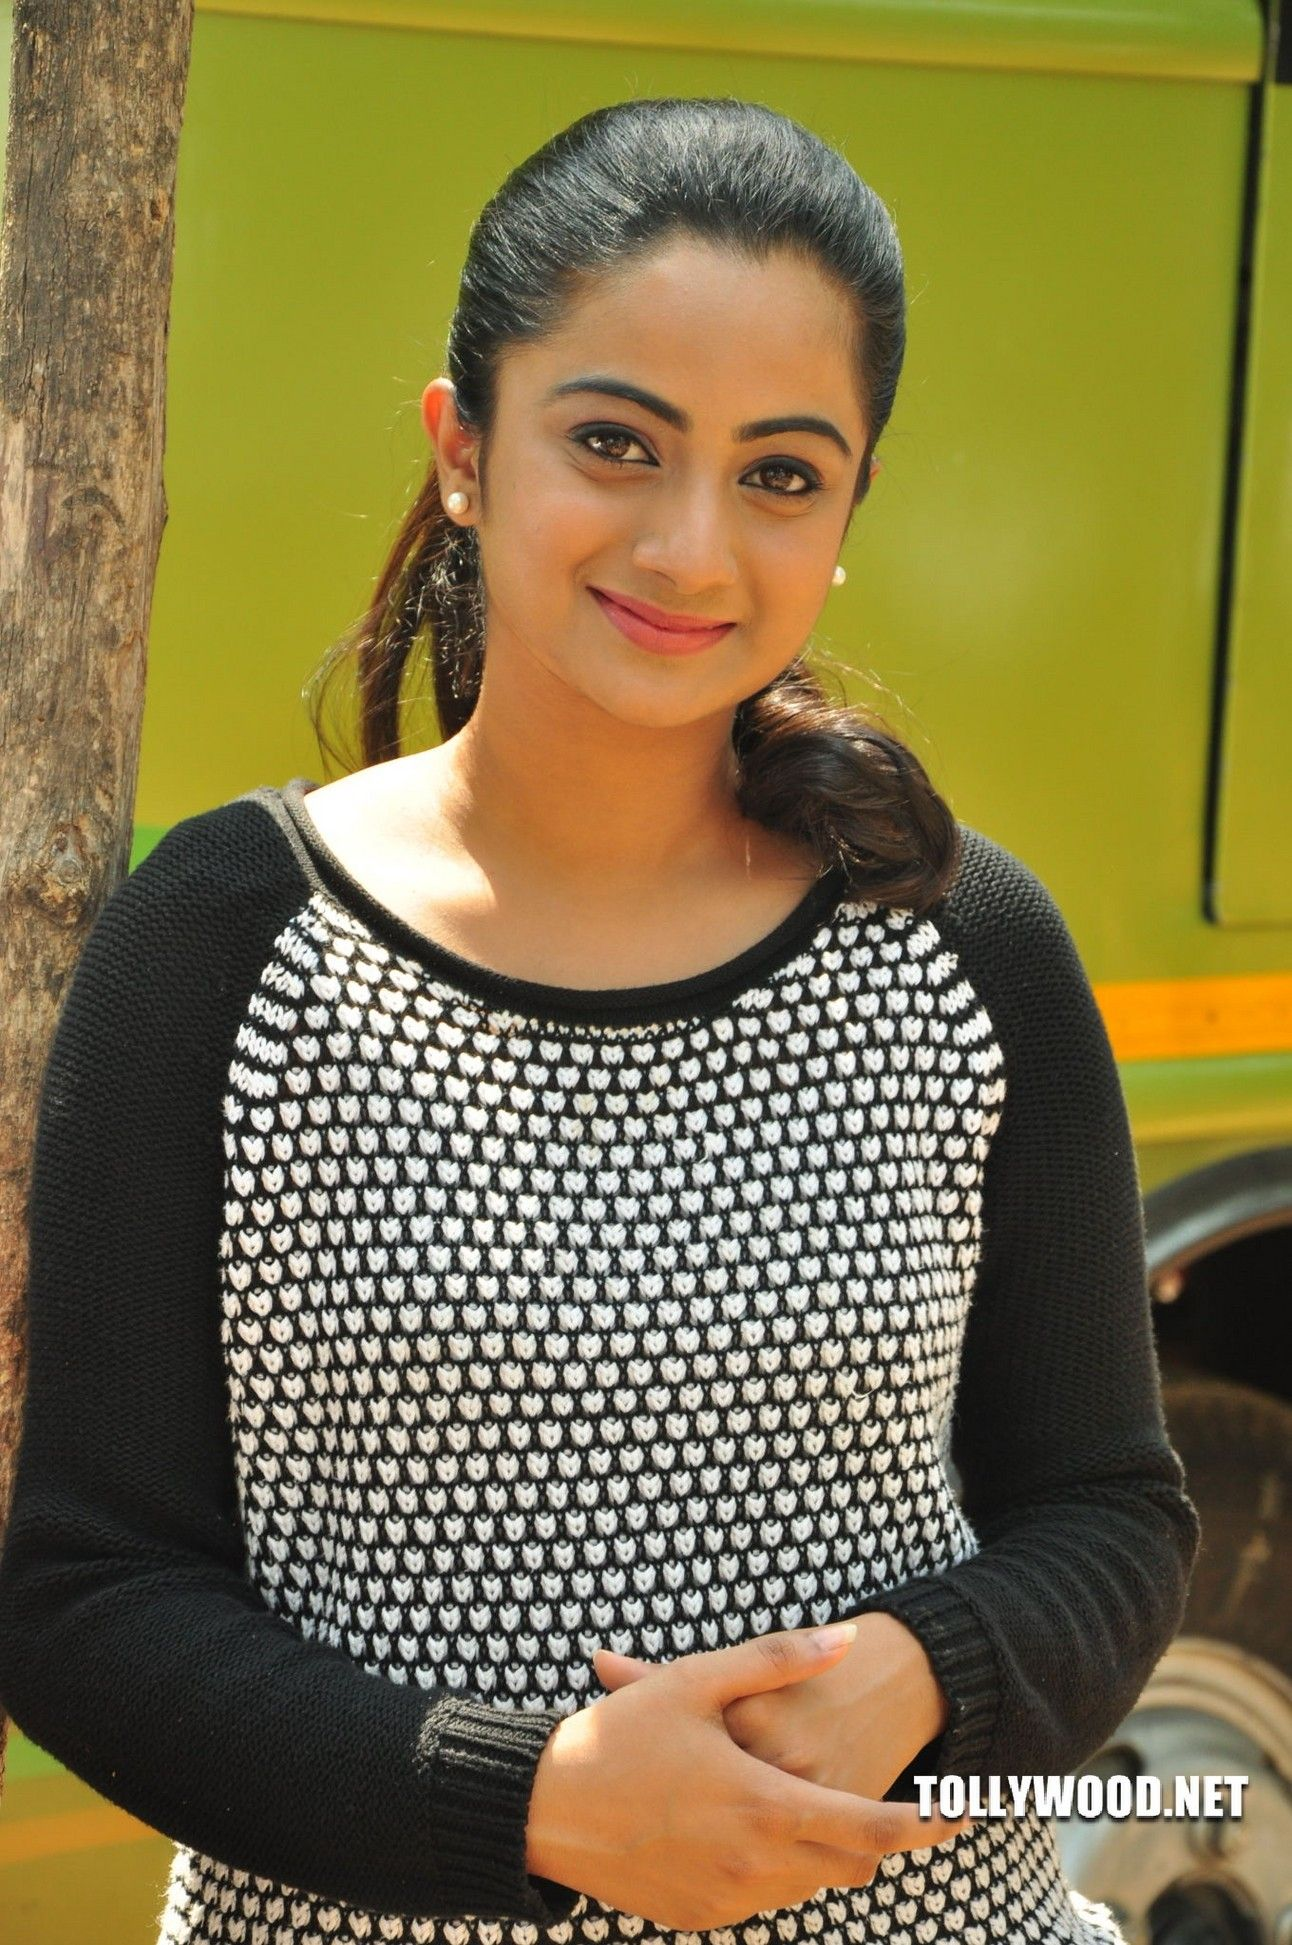 Namitha pramod new gallery tollywood photo gallery pinterest namitha pramod new gallery altavistaventures Image collections